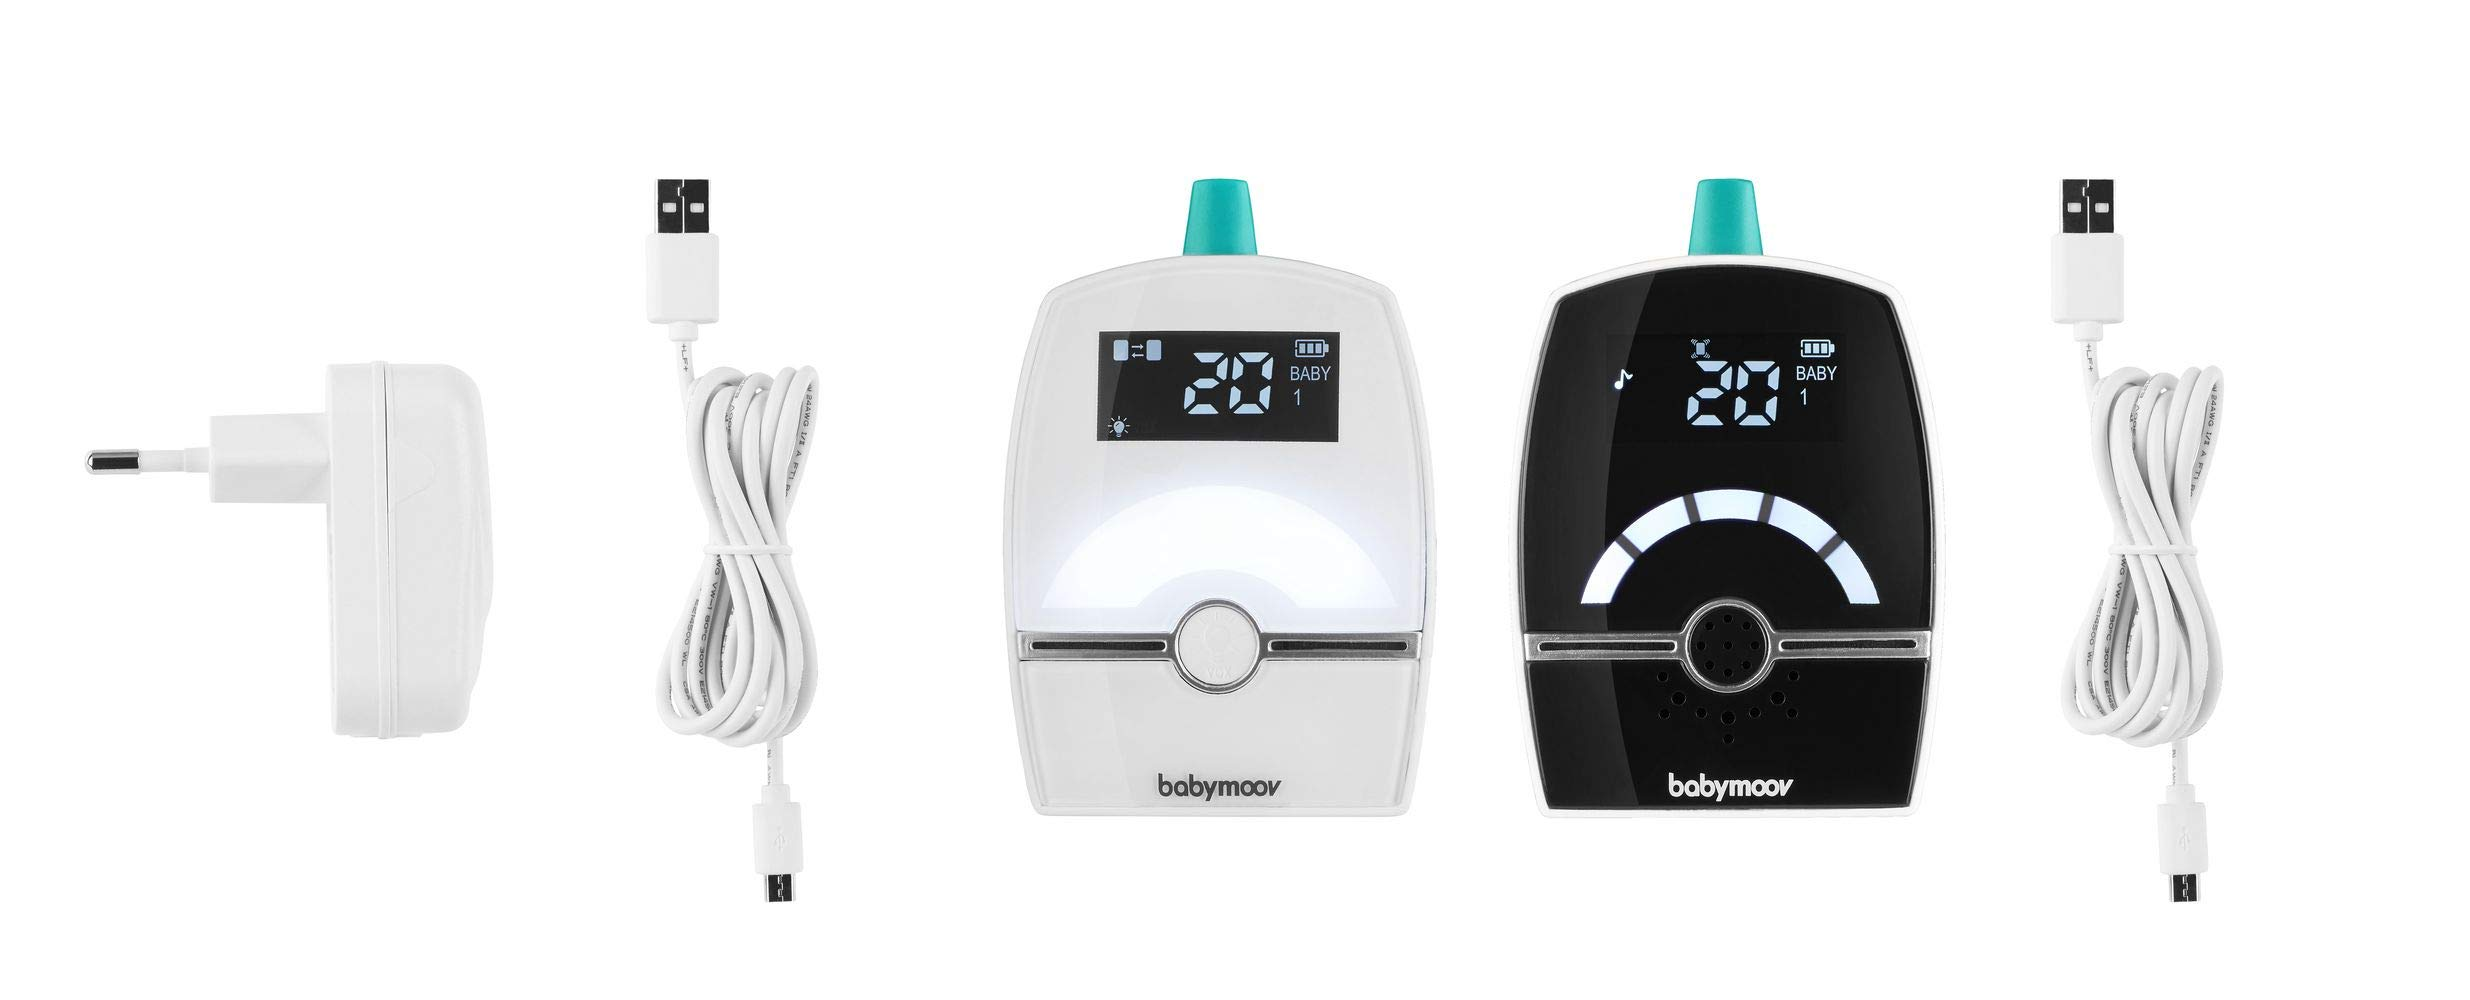 BABYMOOV Premium Care Audio Baby Monitor, 1400 m BABYMOOV Digital green technology: this innovation reduces wave emissions from your baby monitor and guarantees the longest range on the market. premium care has a 1400m range: ideal for a house Complete: this baby monitor has a 3-alert vex mode (visual, audio, or vibration) and an out-of-range/ low battery alarm. you can connect two transmitters to monitor two children! Night light, lullabies, and temperature: premium care emits a soft light and plays lullabies. the temperature indicator enables you to monitor the temperature in the baby's room 7